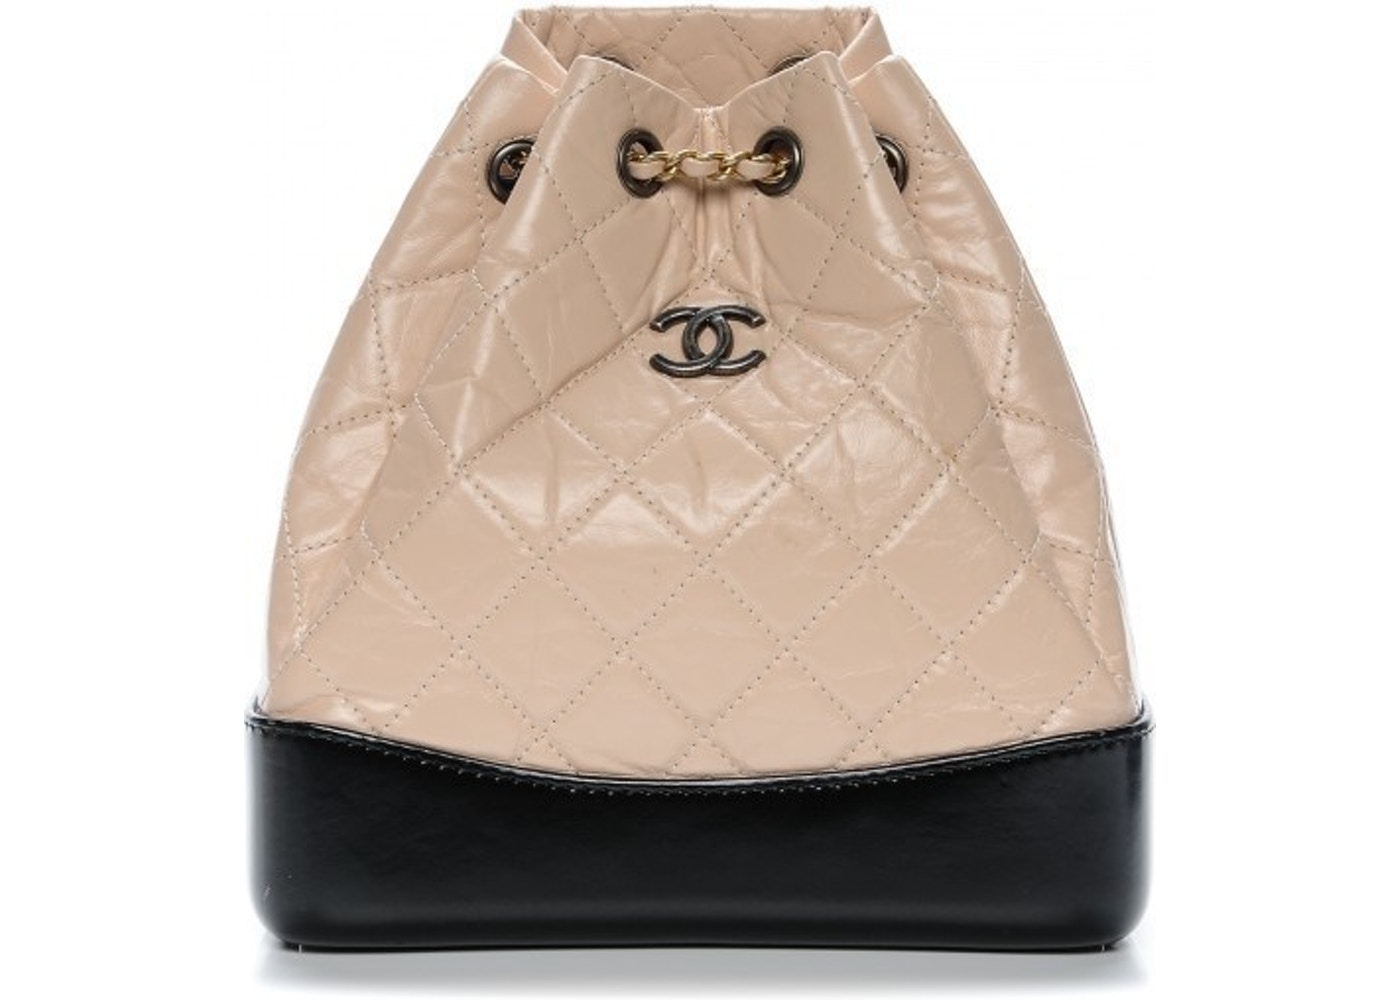 92c07287a6cb Chanel Gabrielle Backpack Diamond Quilted Beige/Black